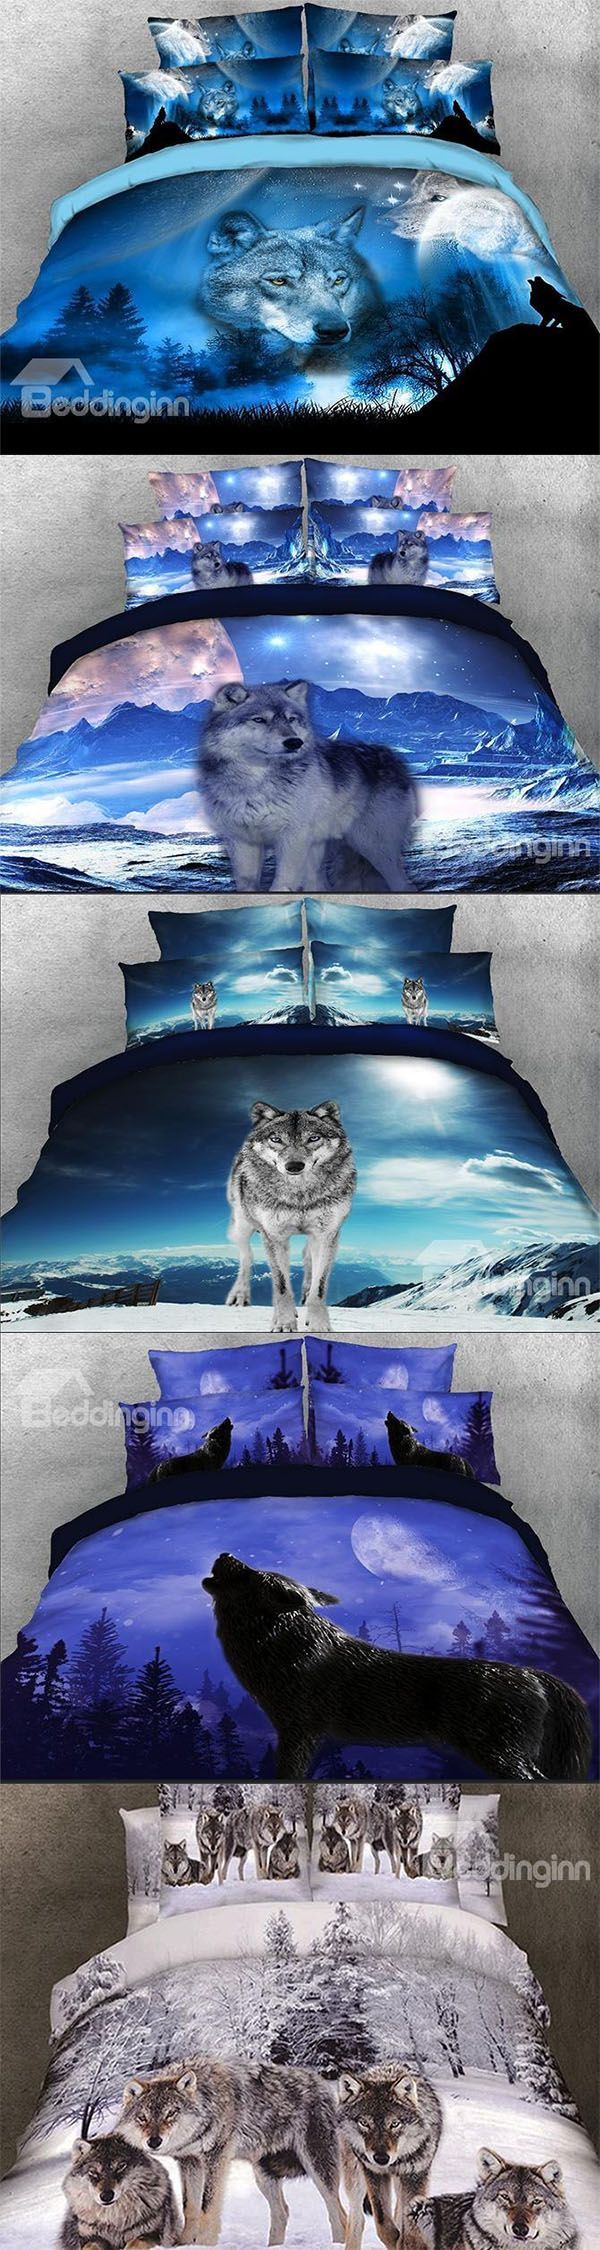 Celebrate your love for wildlife by 3D wolf printed bedding sets. This beautiful bedding set features a lone gray wolf, isolated from the pack, this wolf makes his own way, independent, majestic and noble.